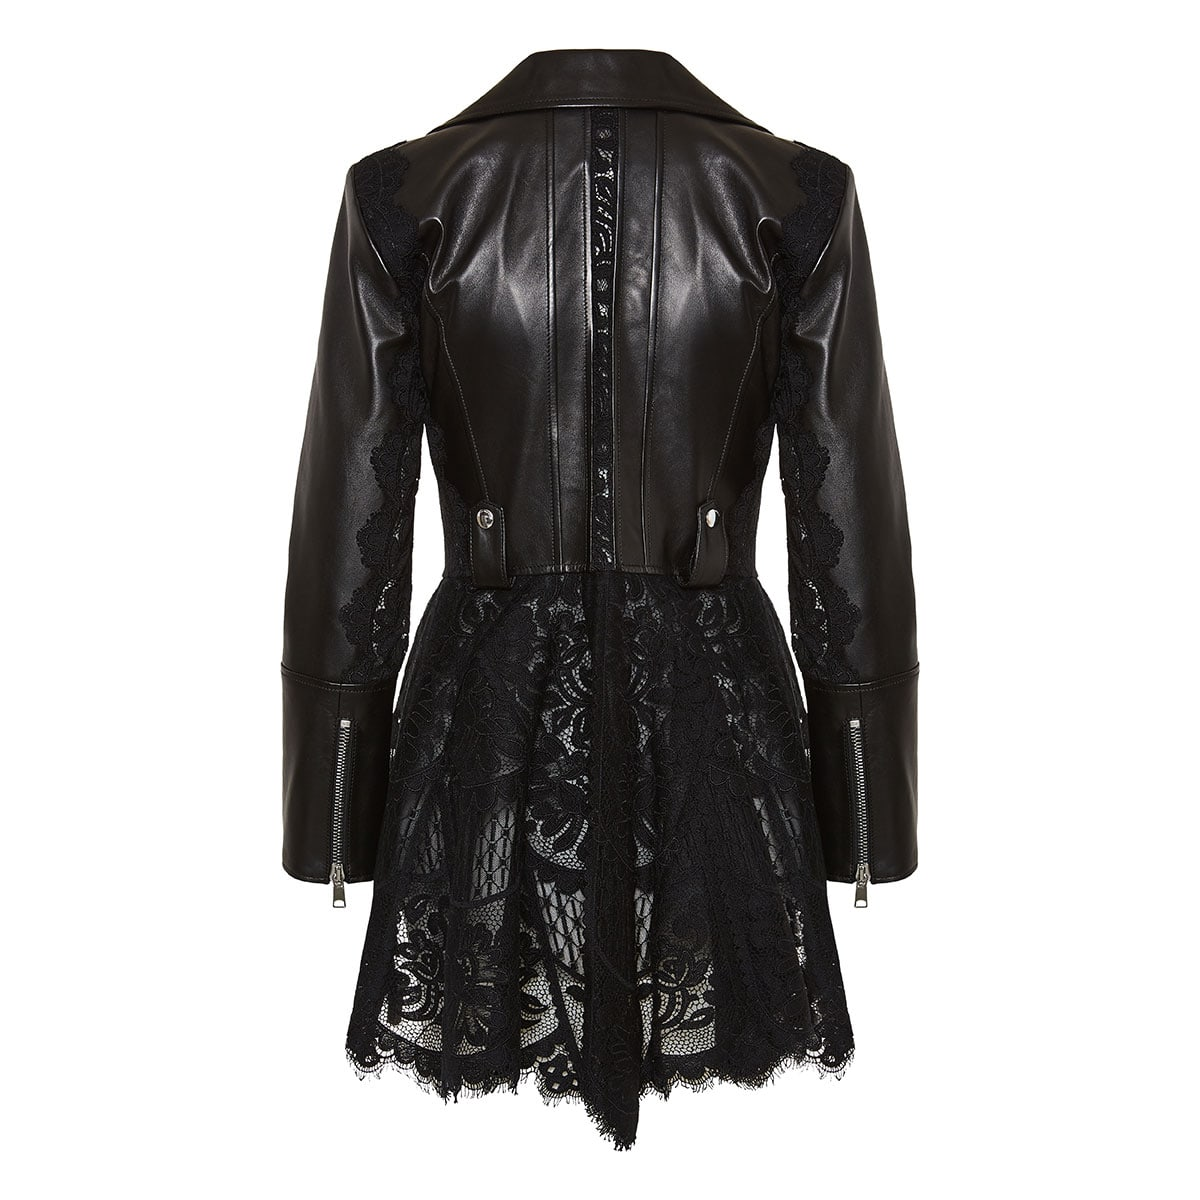 Lace-trimmed peplum leather jacket